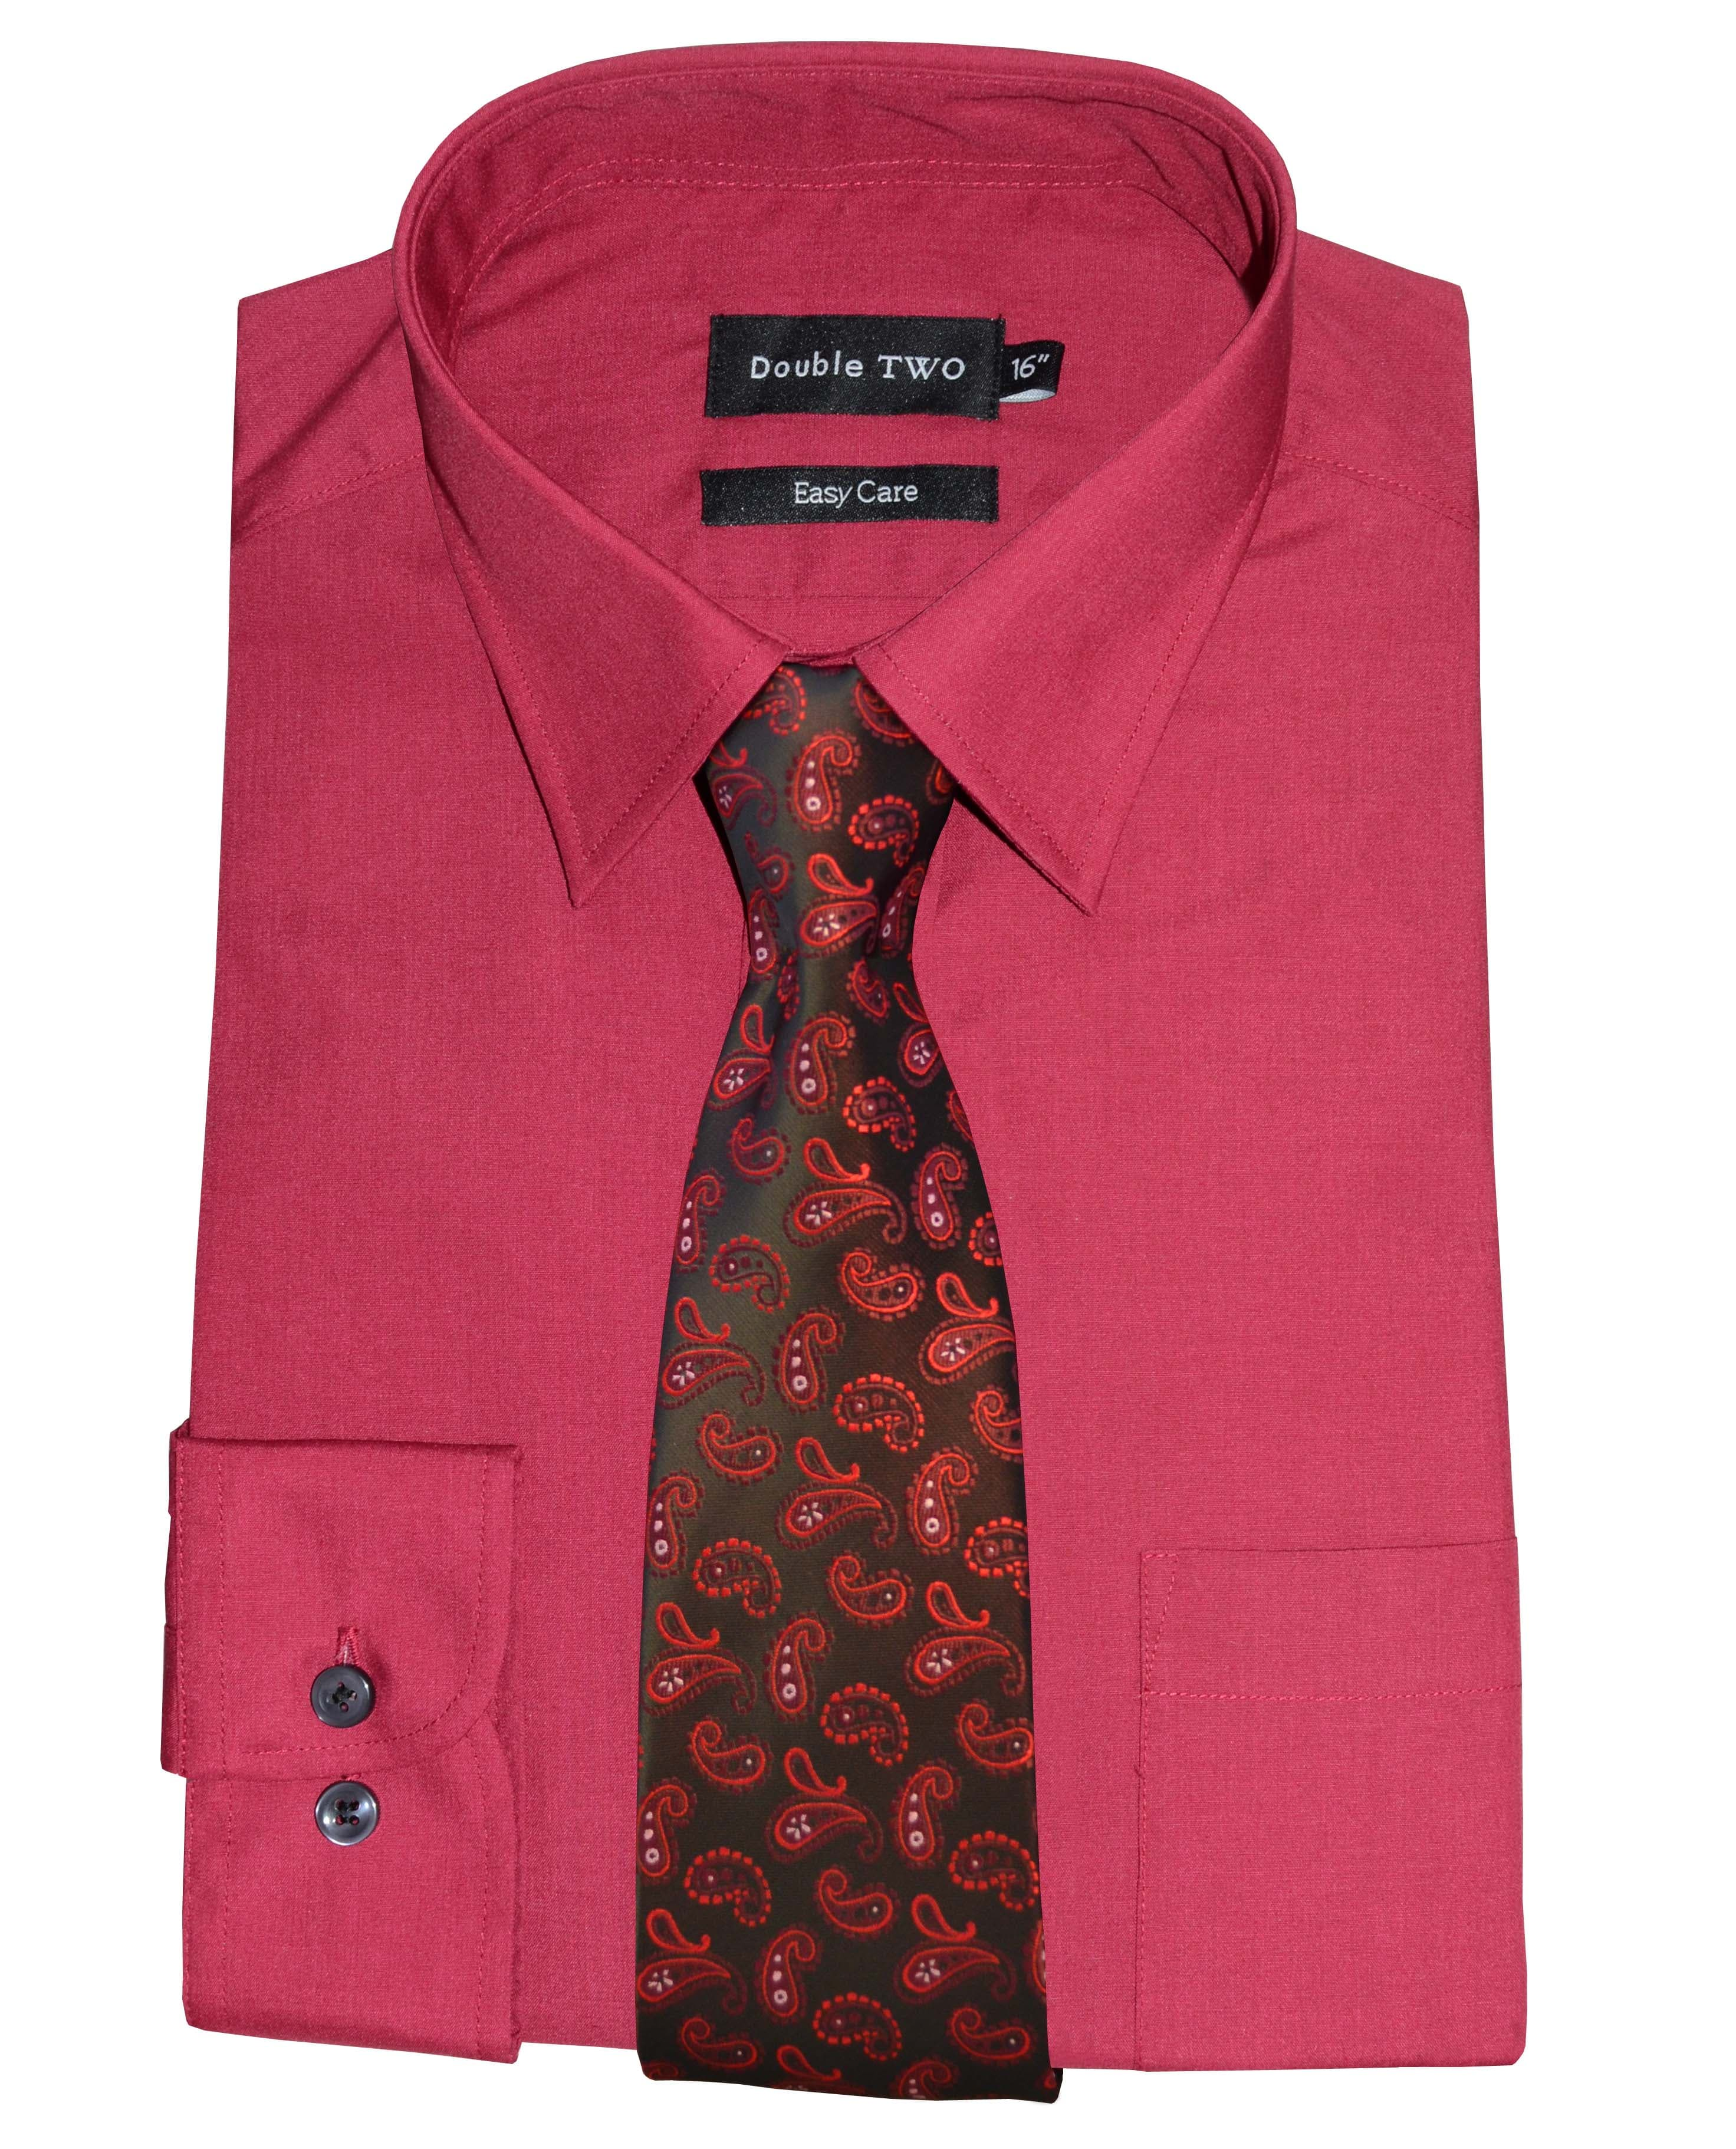 Find great deals on eBay for mens dress shirt and tie set. Shop with confidence.